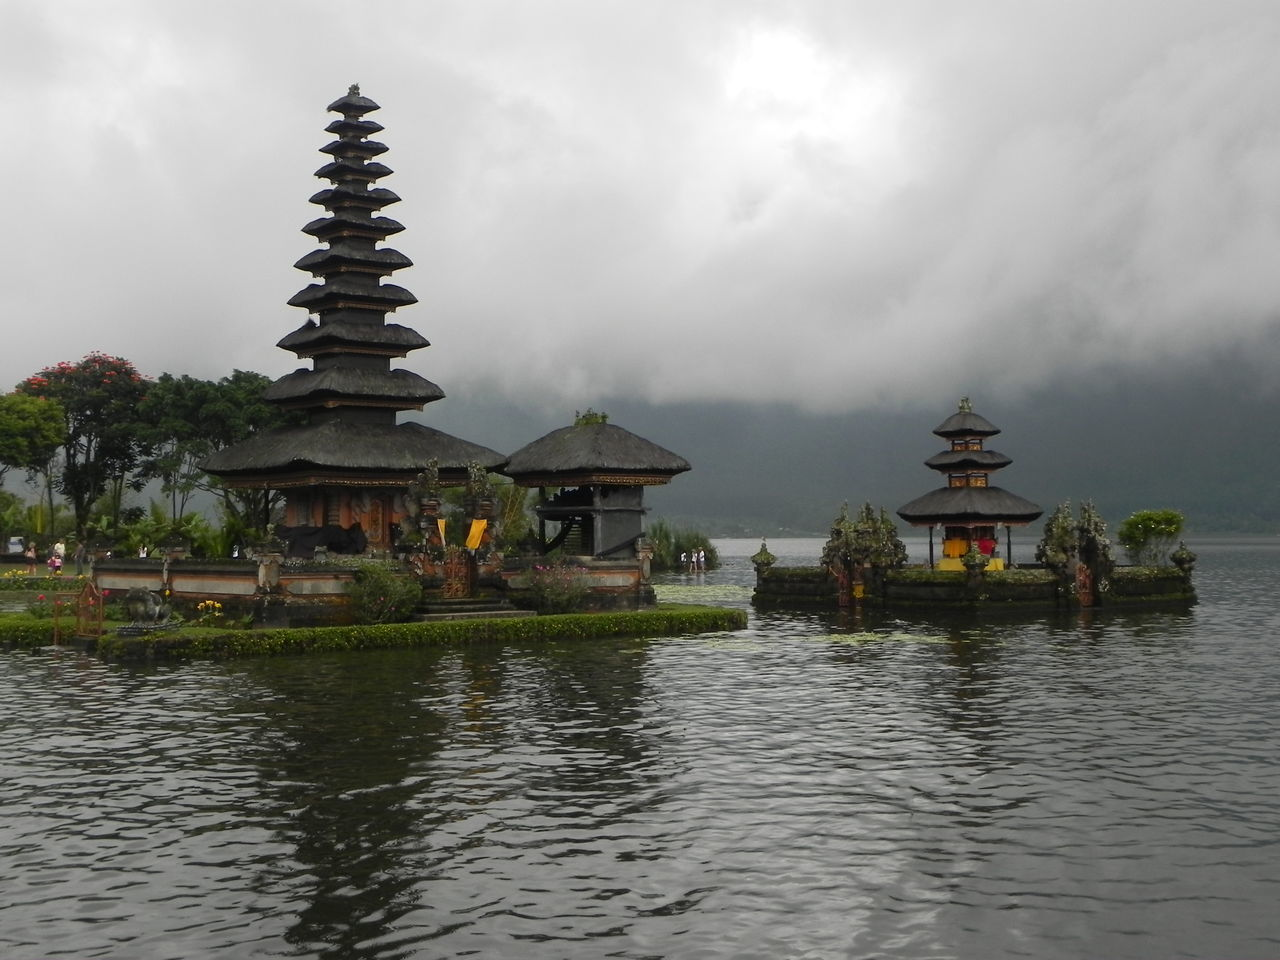 Water temple (Bali / Indonesia) Architecture ASIA Bali Built Structure Cloud Cloud - Sky Cloudy INDONESIA Lake Nature Reflection Religion Sky Spirituality Temple - Building Tranquility Travel Vacations Water Water Reflections Water-temple Waterfront